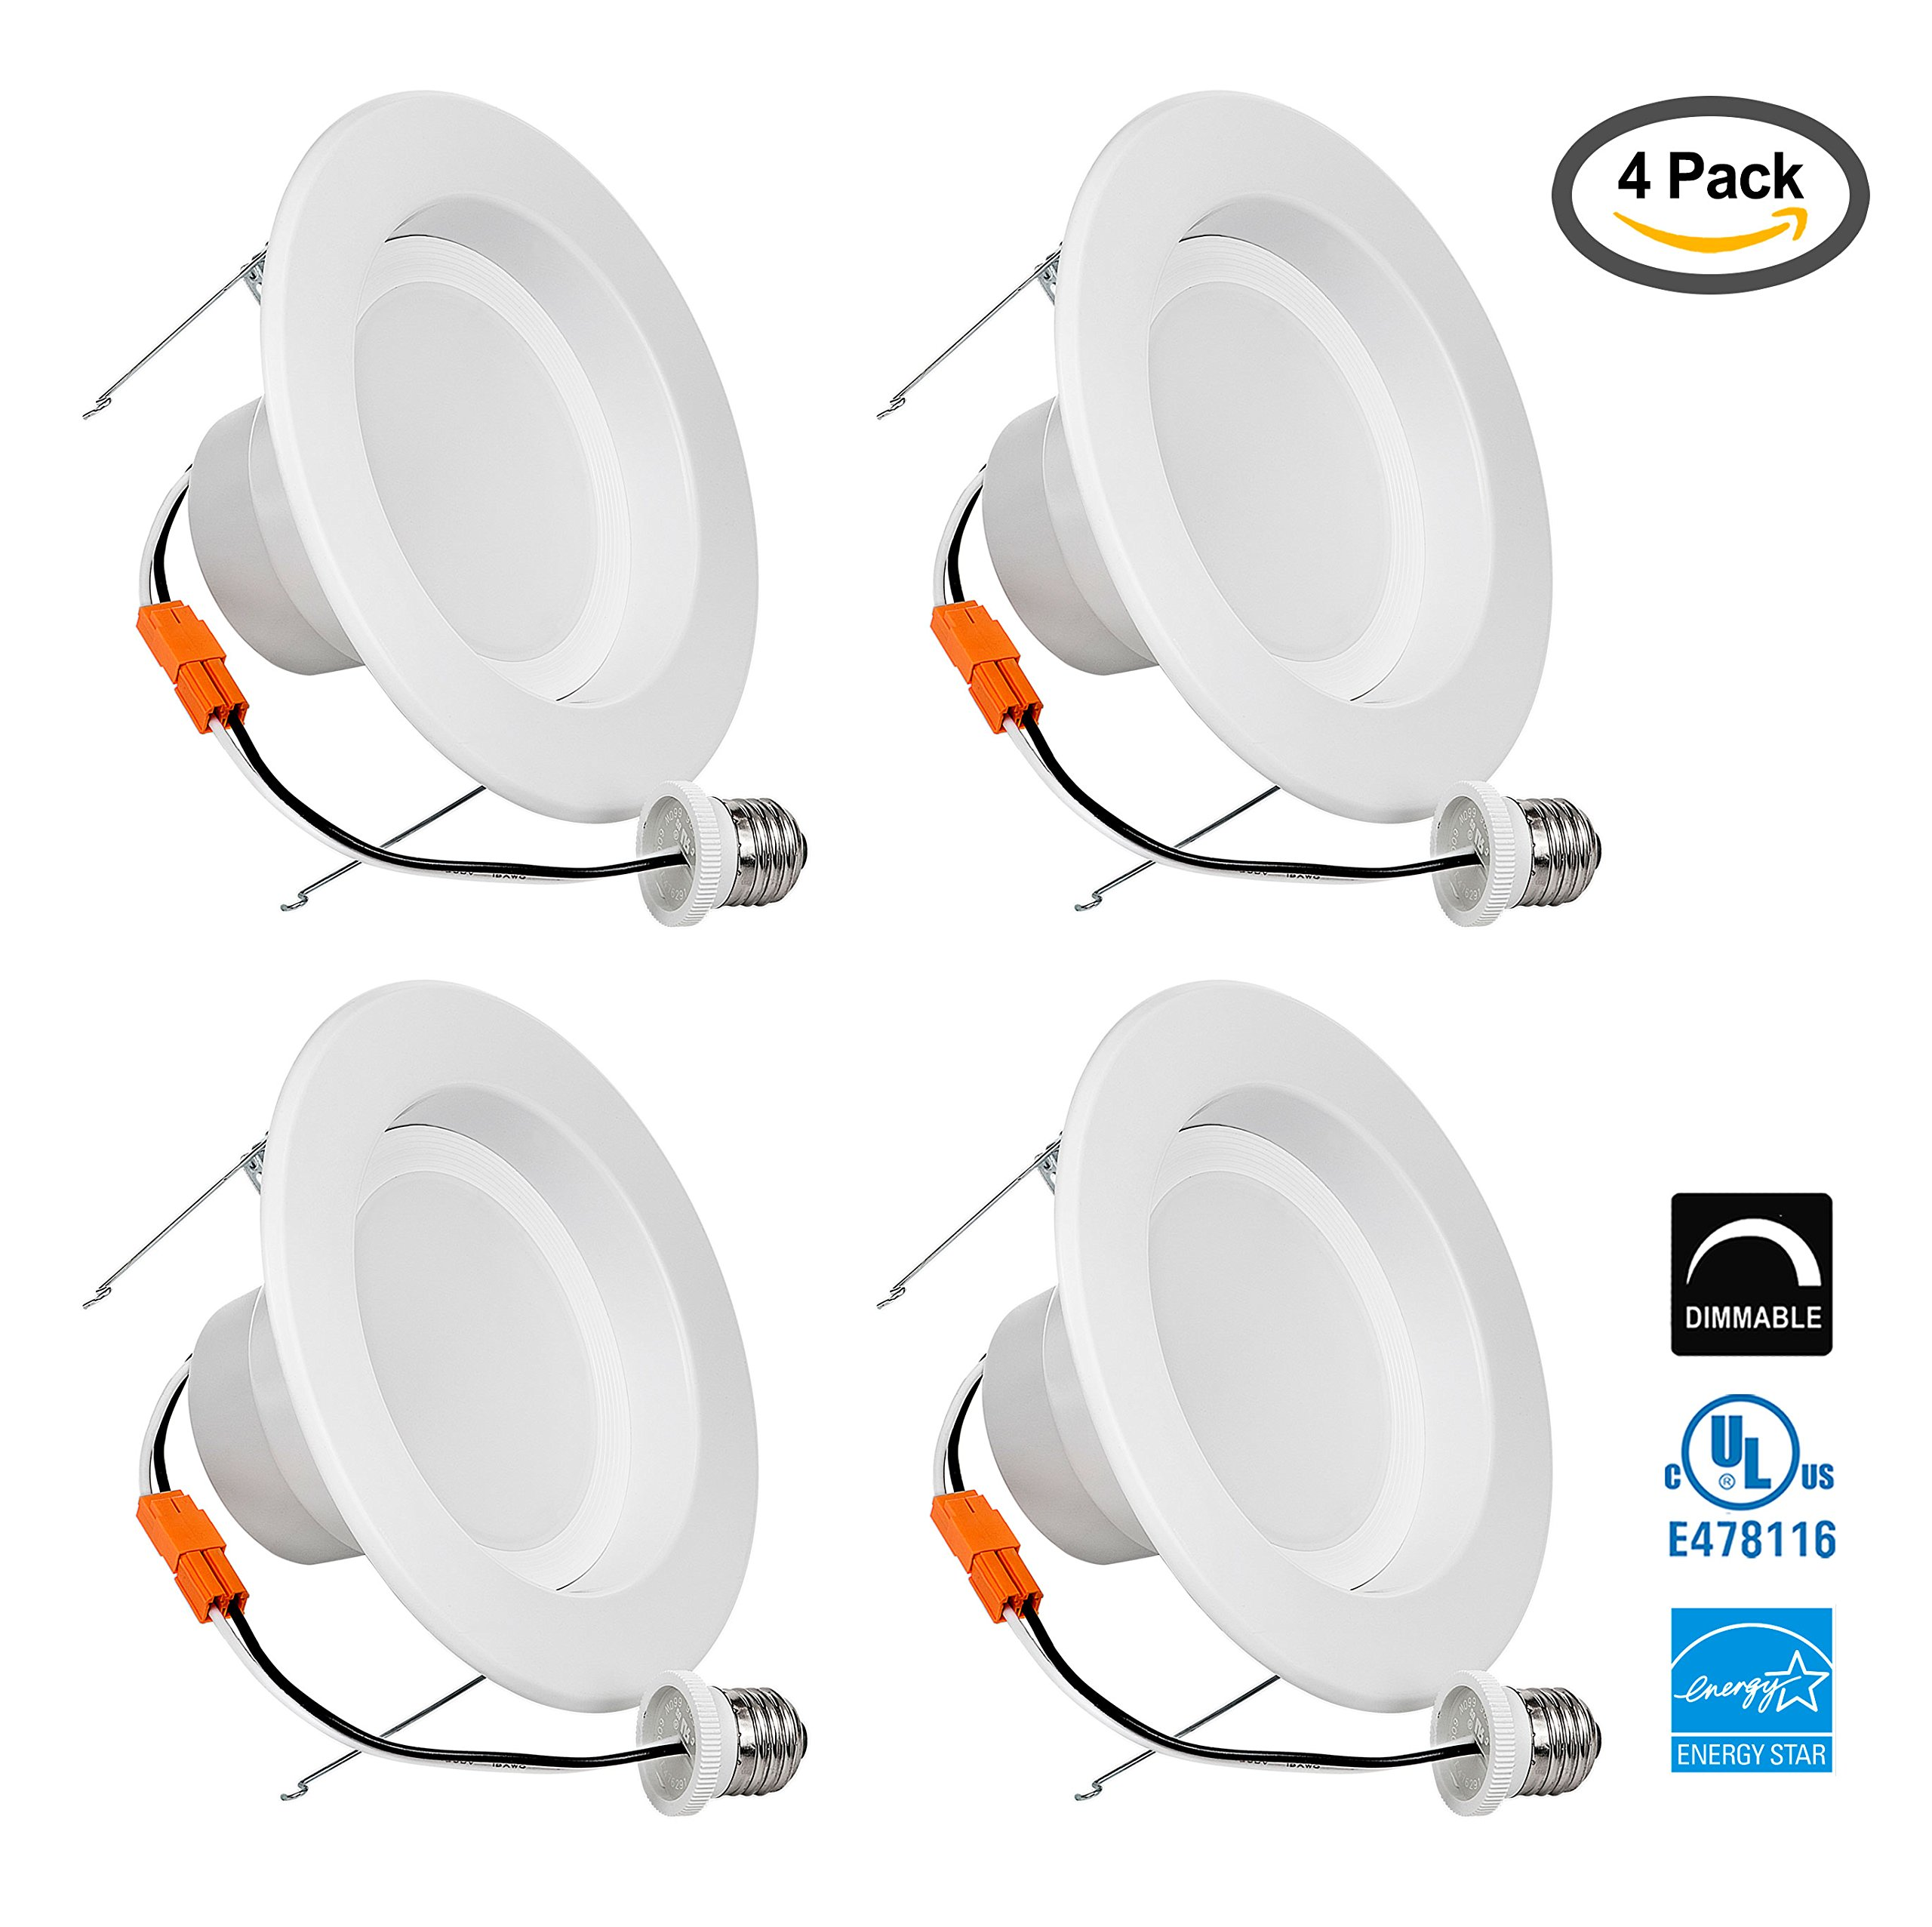 LB13114 5/6 Inch LED Downlight Retrofit Recessed Lighting Fixture, High Output, 18W (120W) Soft white 3000K, 1500 Lumens, Retrofit LED Recessed Lighting Fixture, LED Ceiling Light, Dimmable (4 Pack)